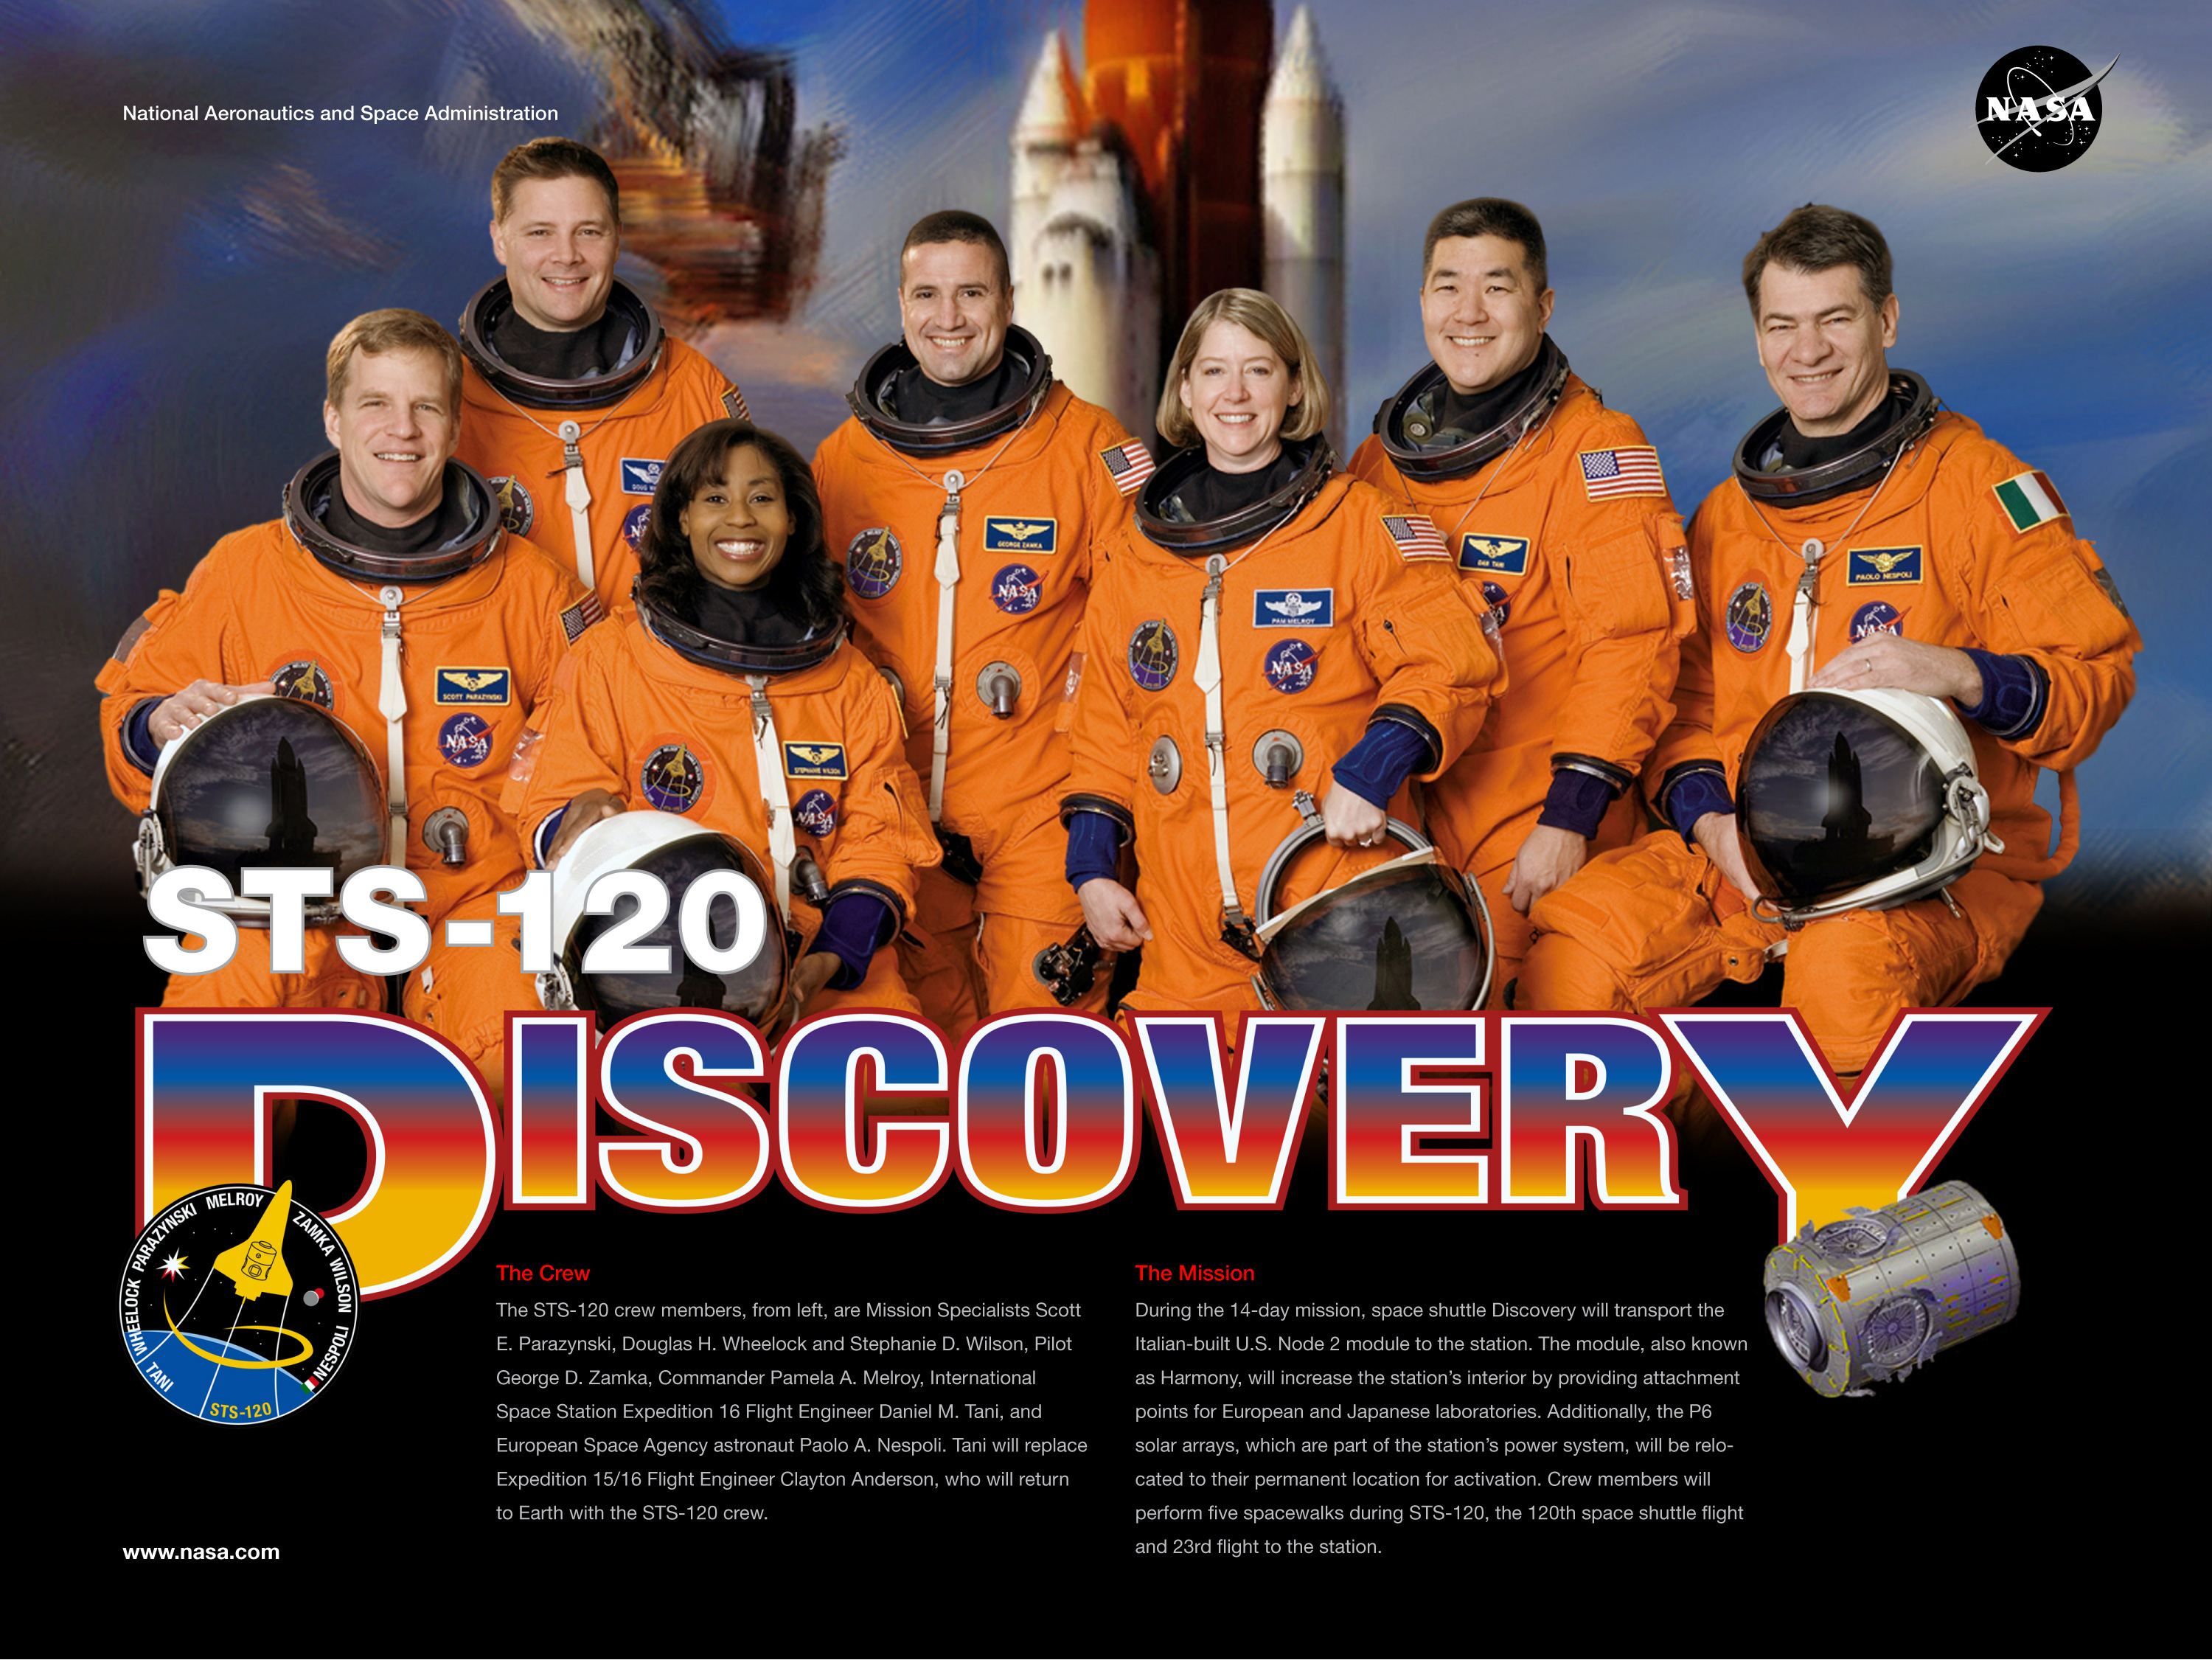 The STS-120 Crew. Image credit NASA